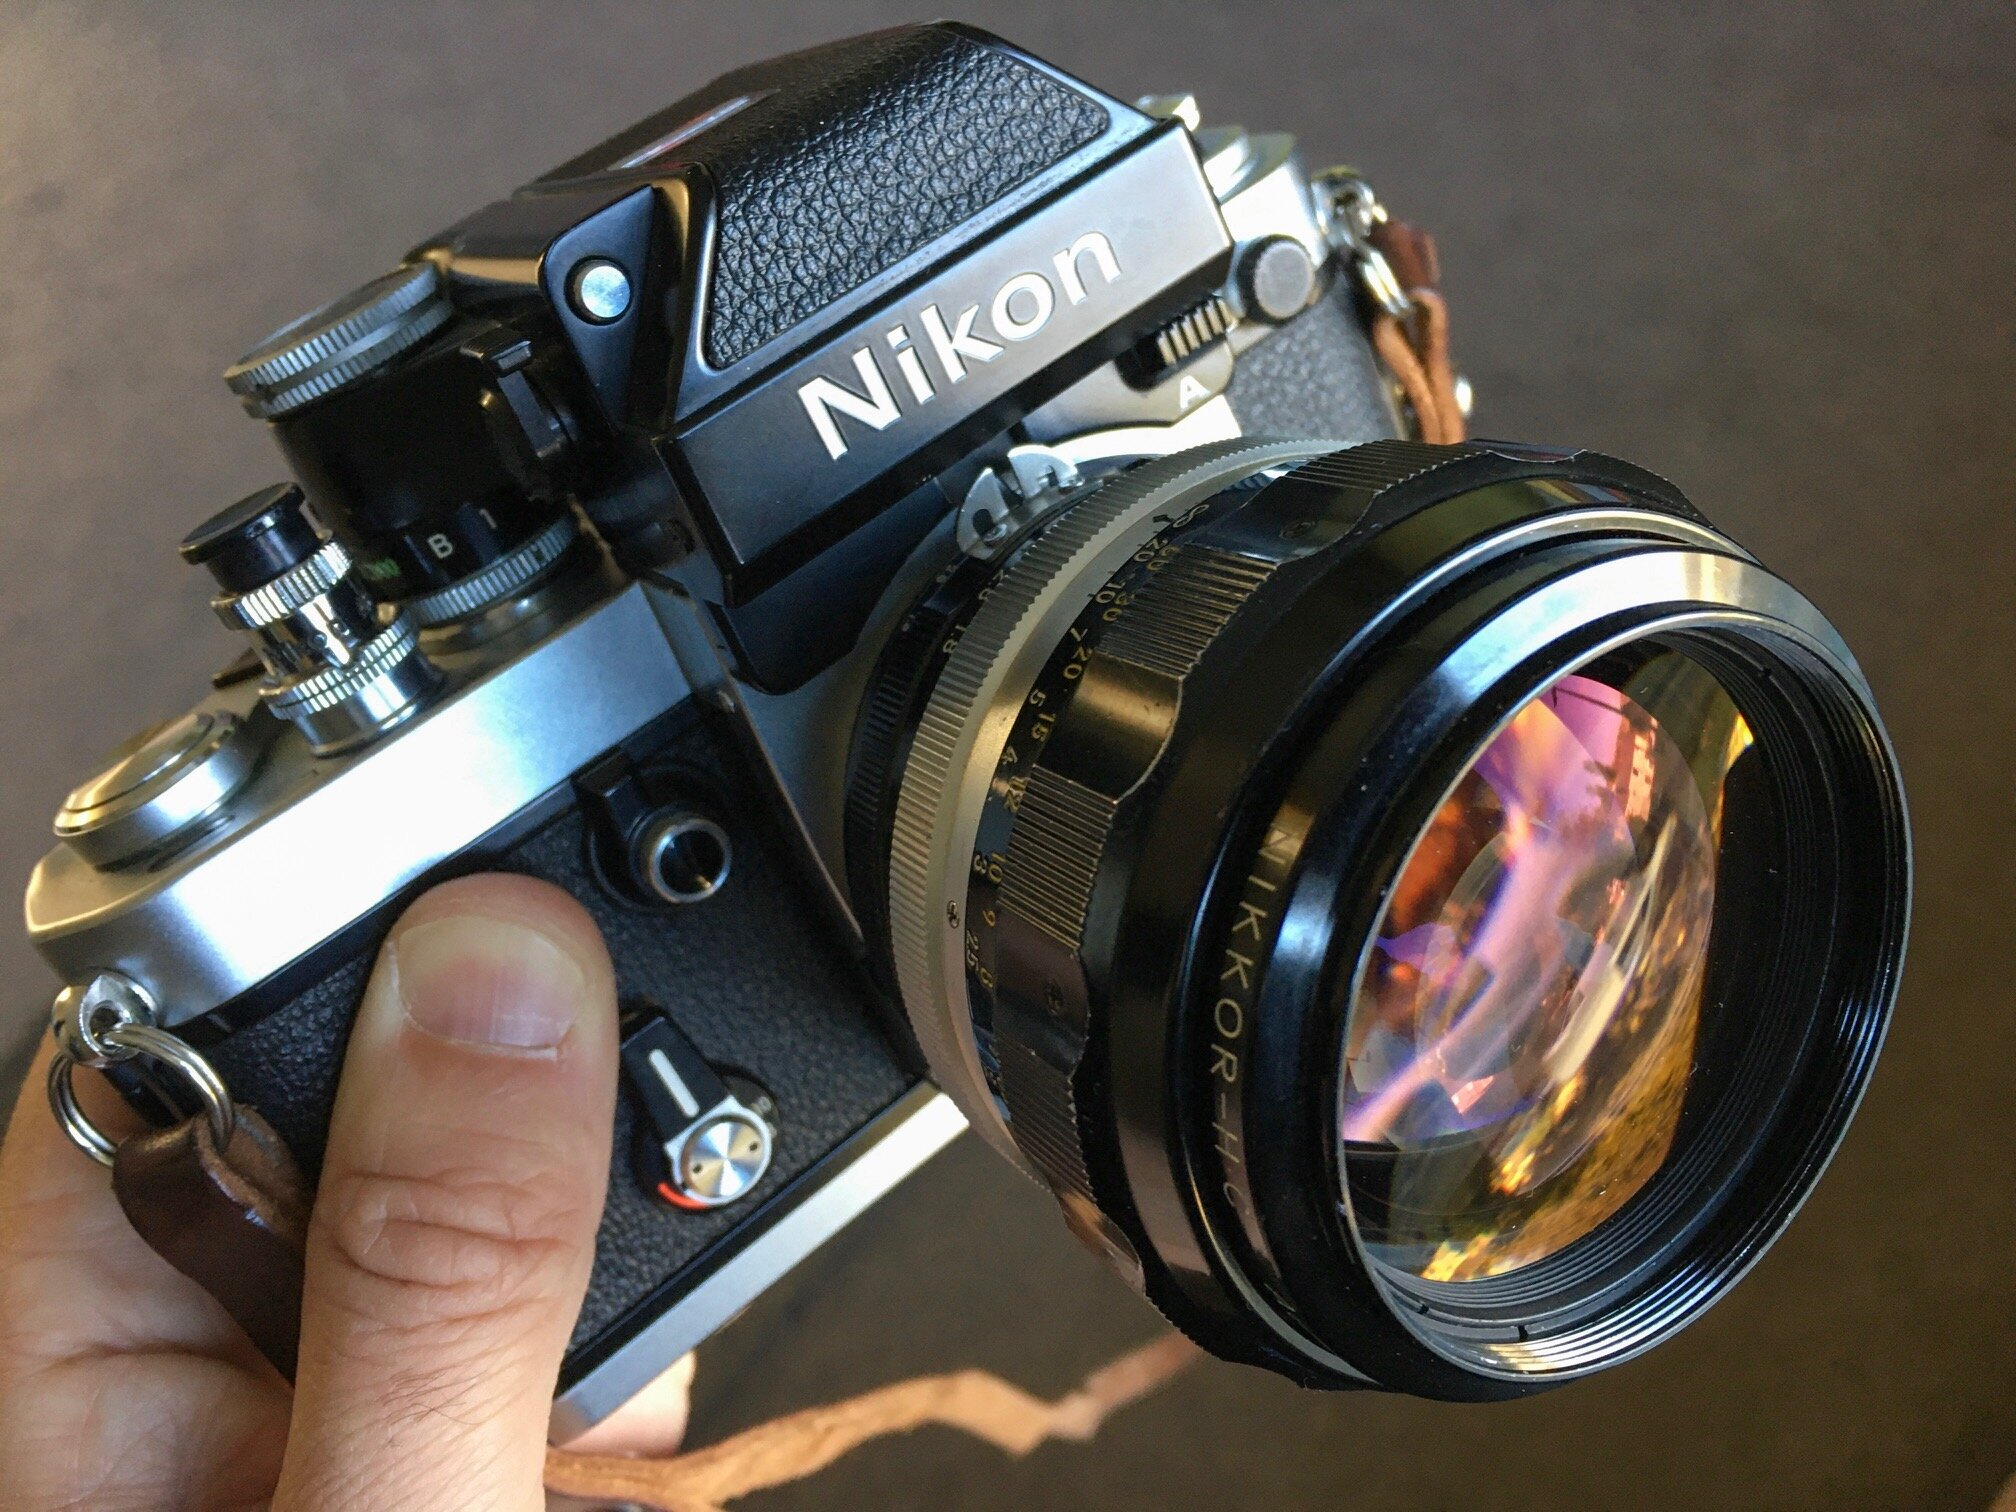 The Nikon F2 and the amazing Nikkor H C 85mm 1.8